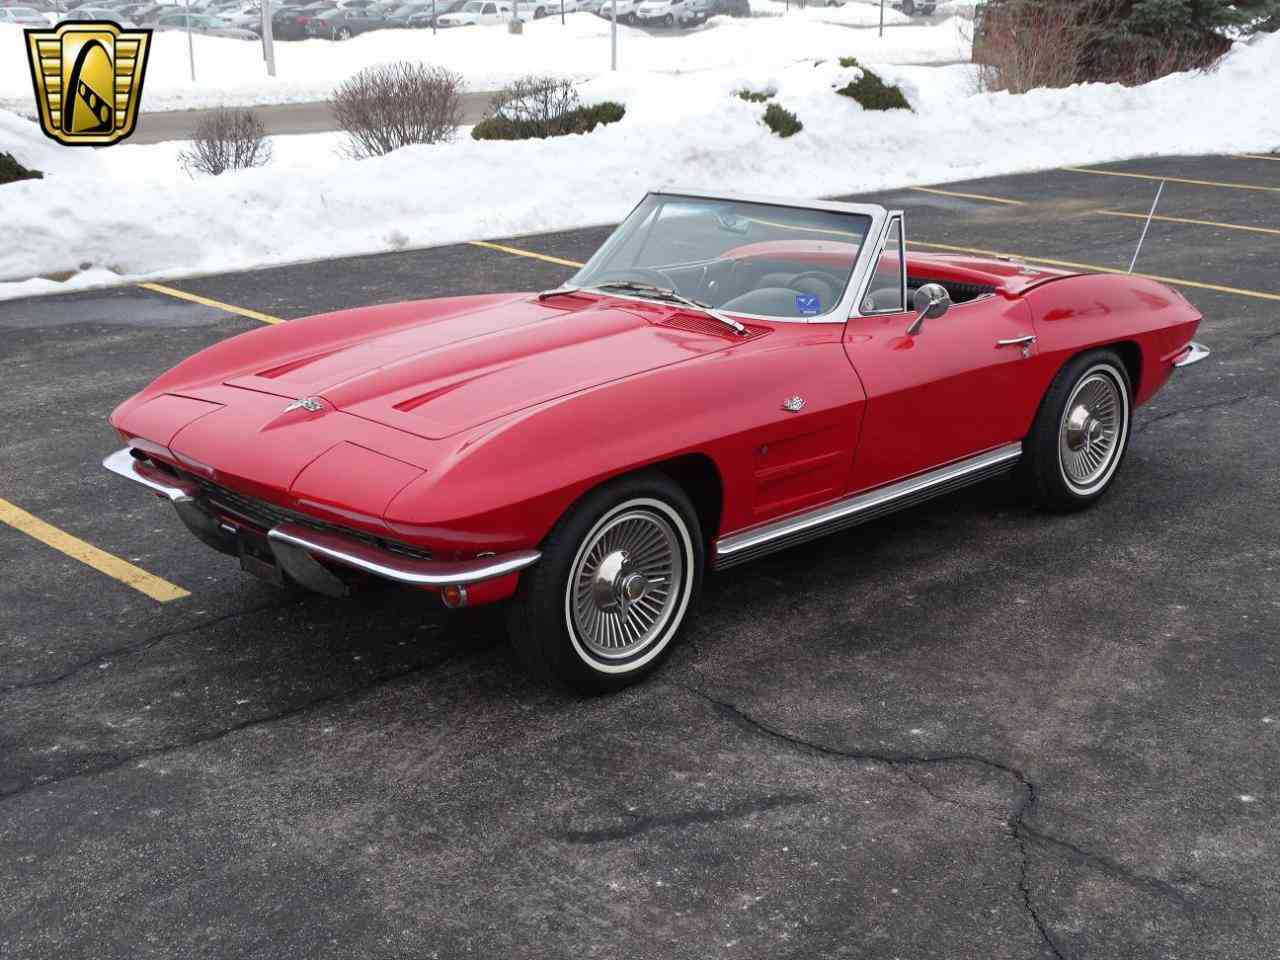 Large Picture of Classic '64 Corvette - $48,995.00 - KEXN